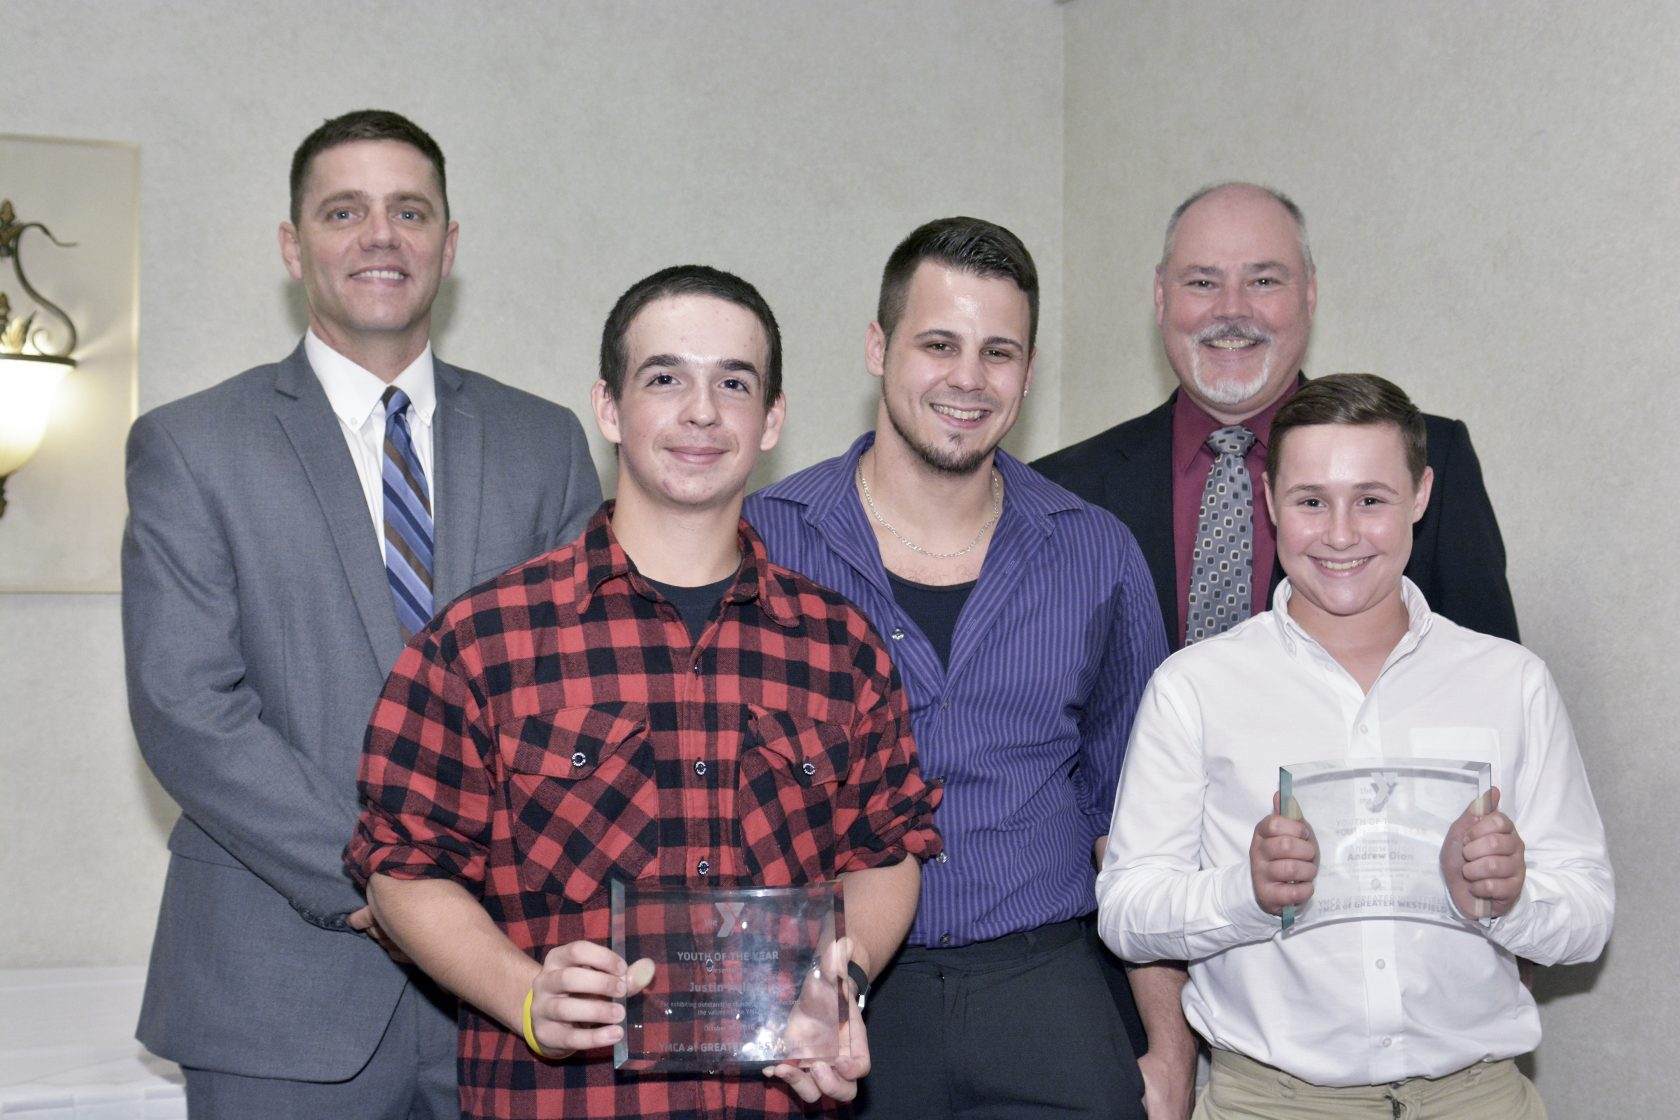 YMCA of Greater Westfield holds Annual Awards Dinner